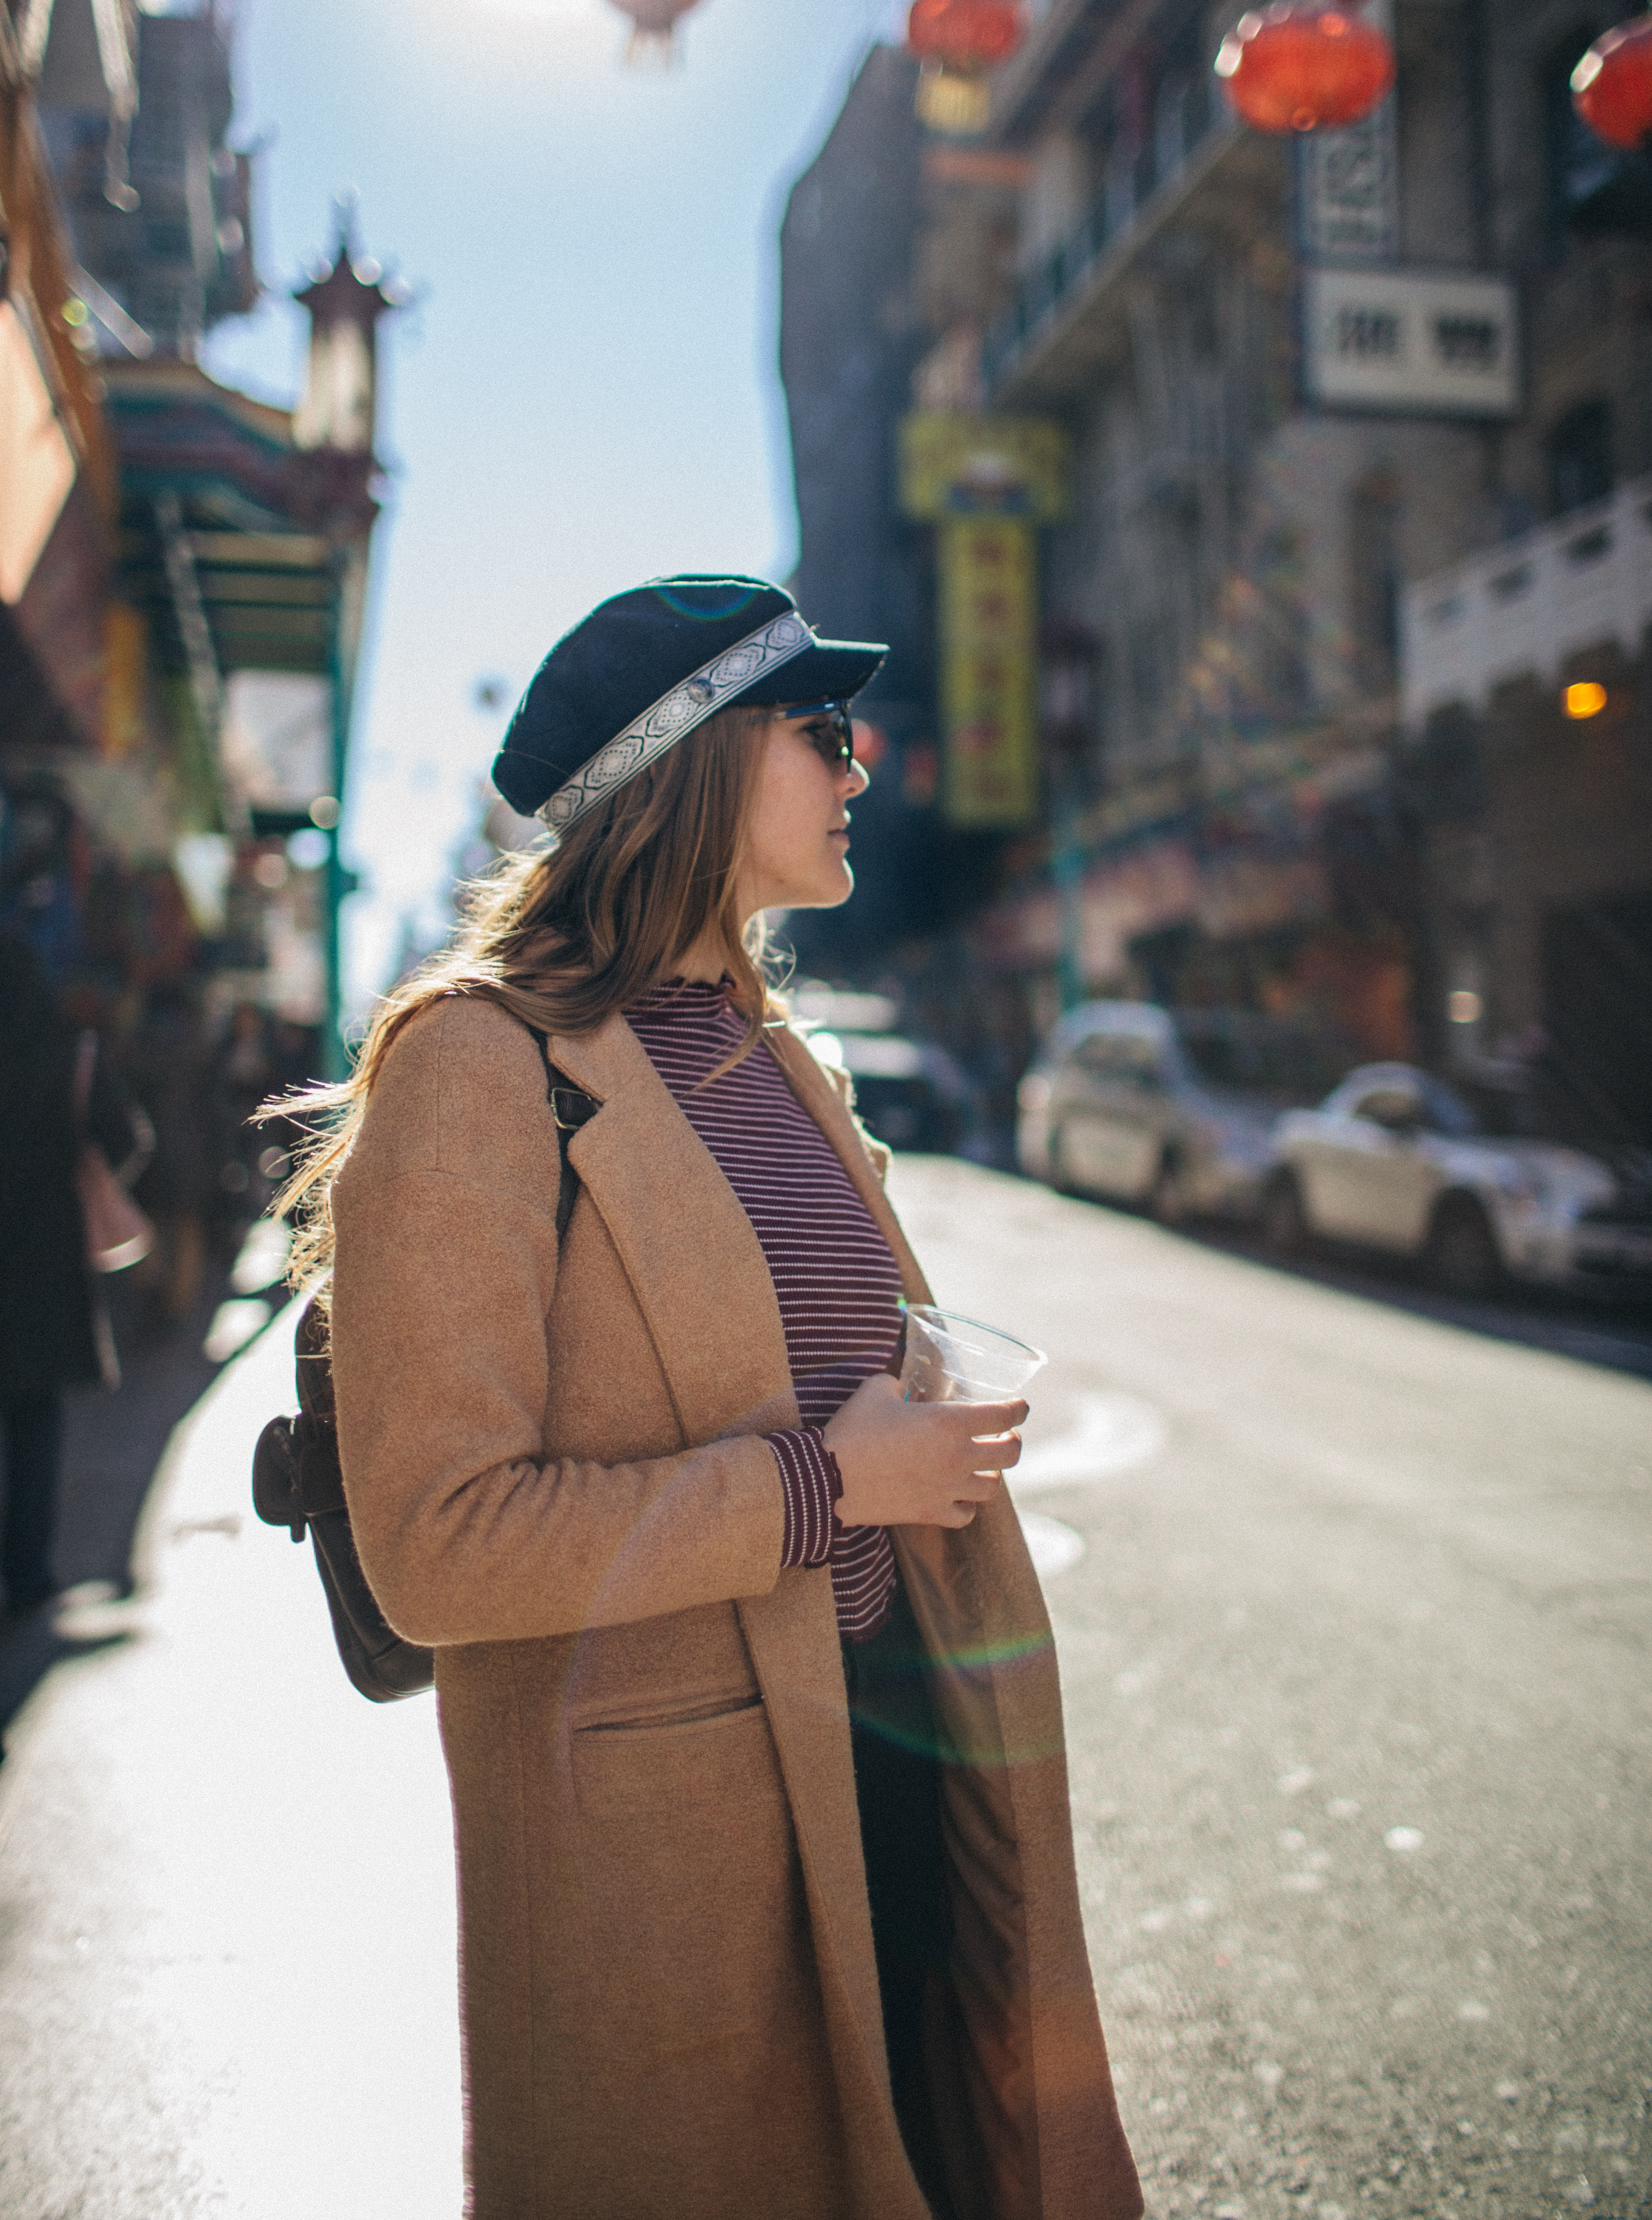 woman in brown coat standing on street during daytime